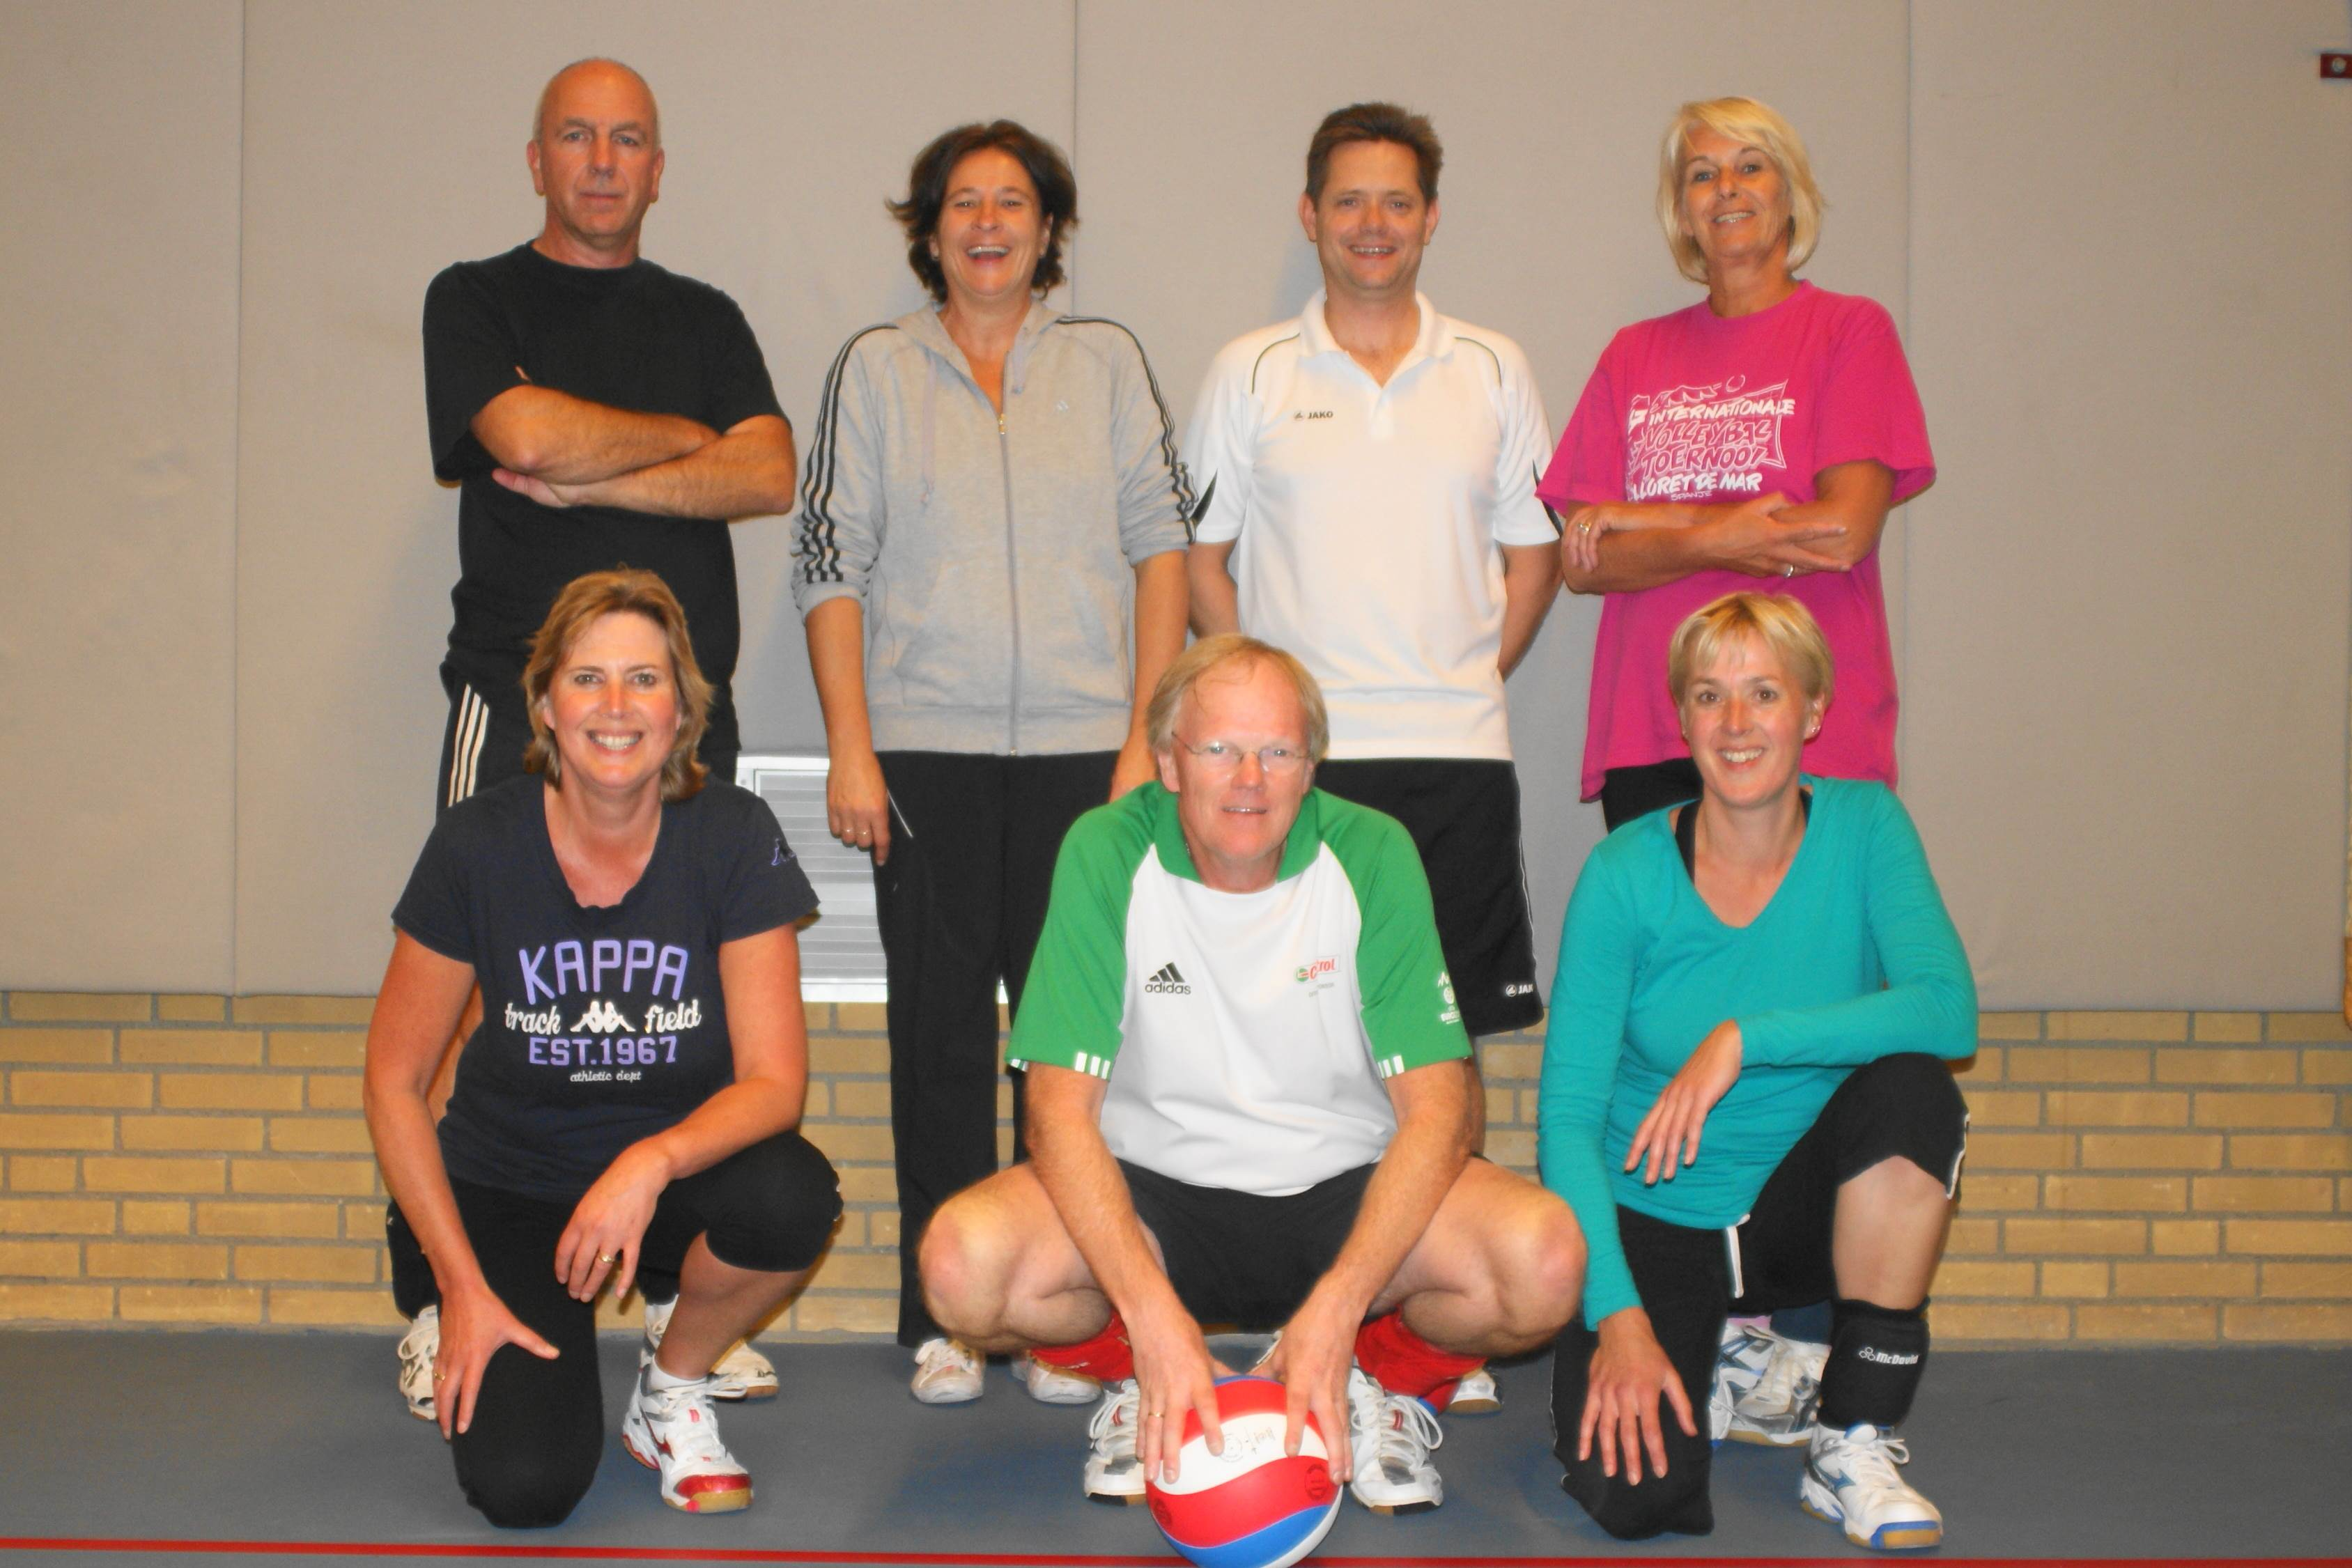 http://www.smashingvelsen.nl/uploads/images/teams/sv96-2014-2015-recreanten-2.jpg